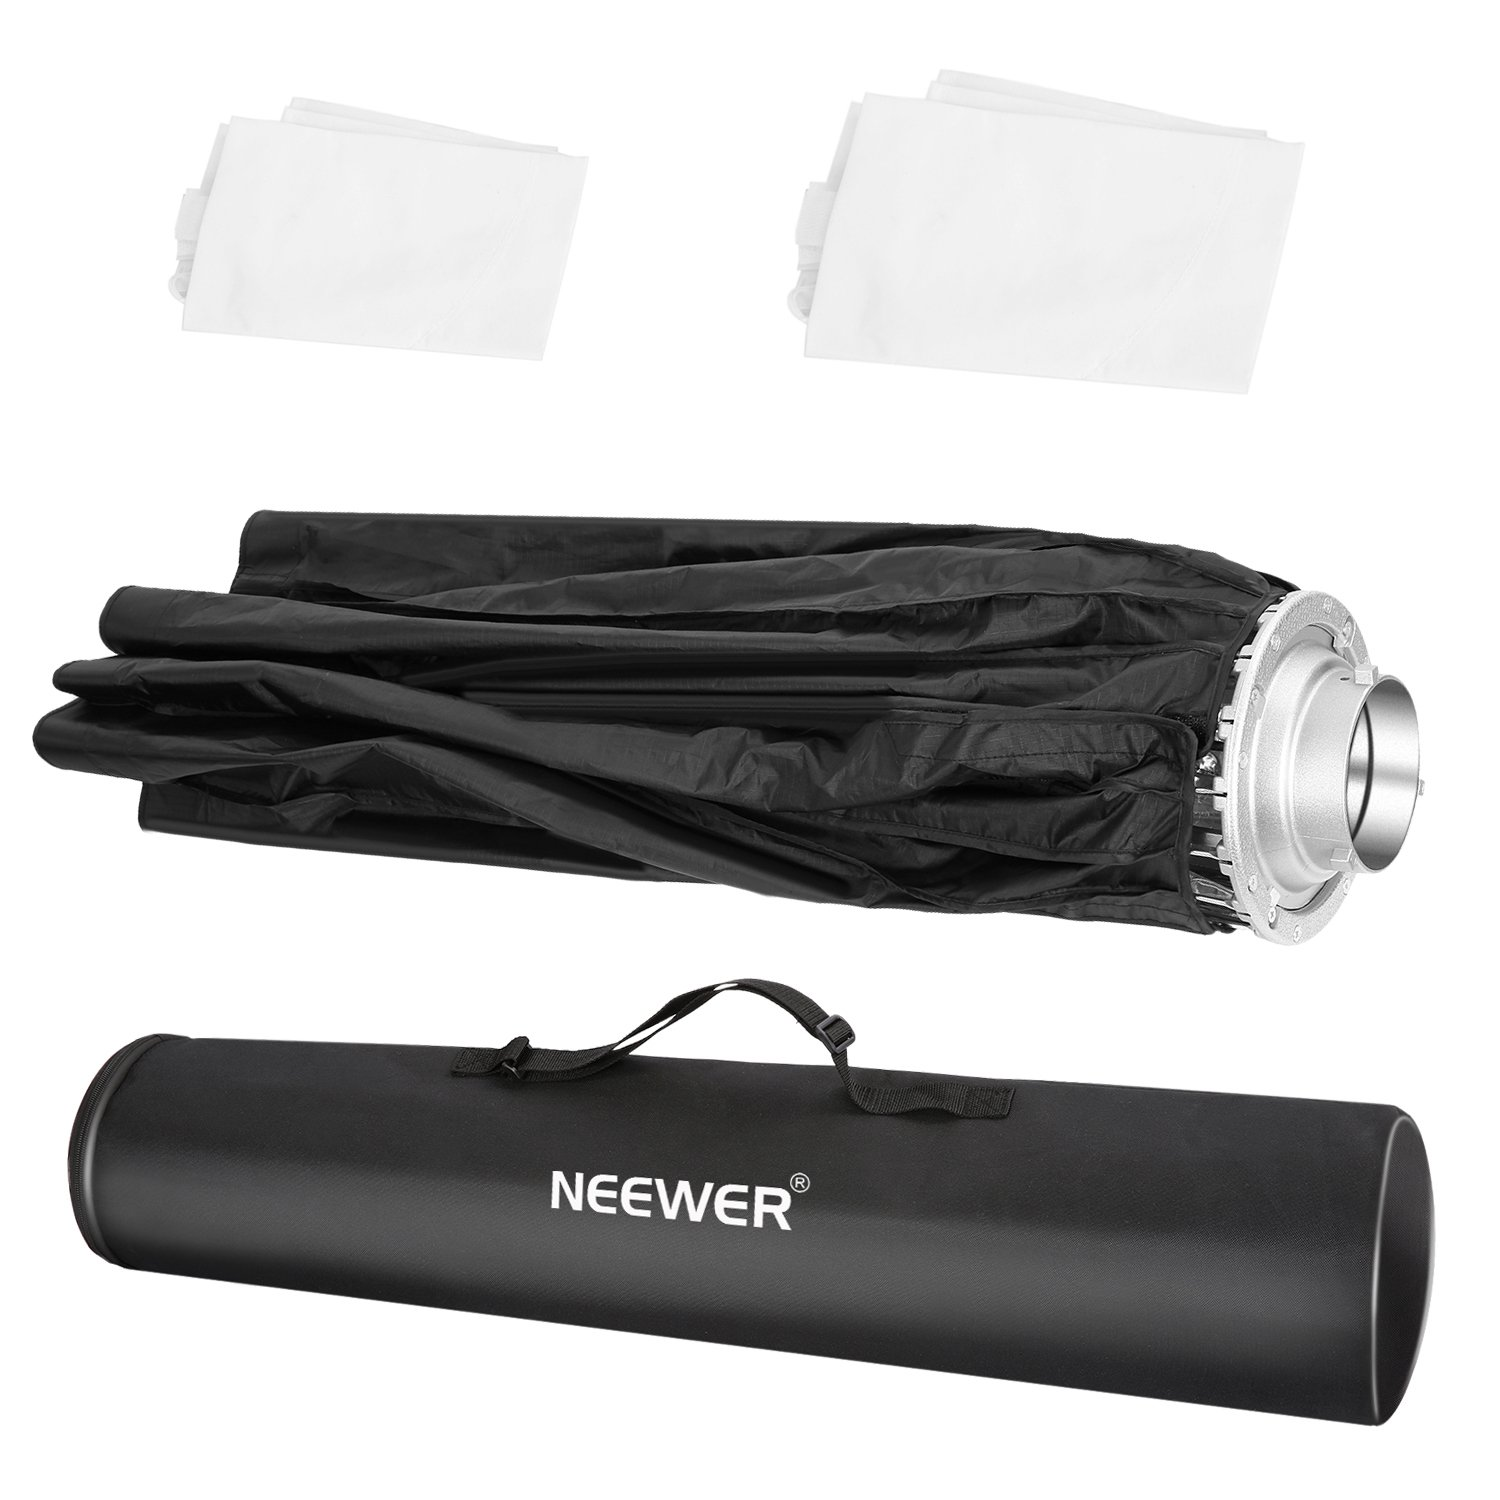 Removable Internal/&External Diffuser and Grid Neewer 38 inches Deep Parabolic Softbox with Bowens Mount Quick Folding Softbox Diffuser for Photography Speedlites Flash Monolight and More